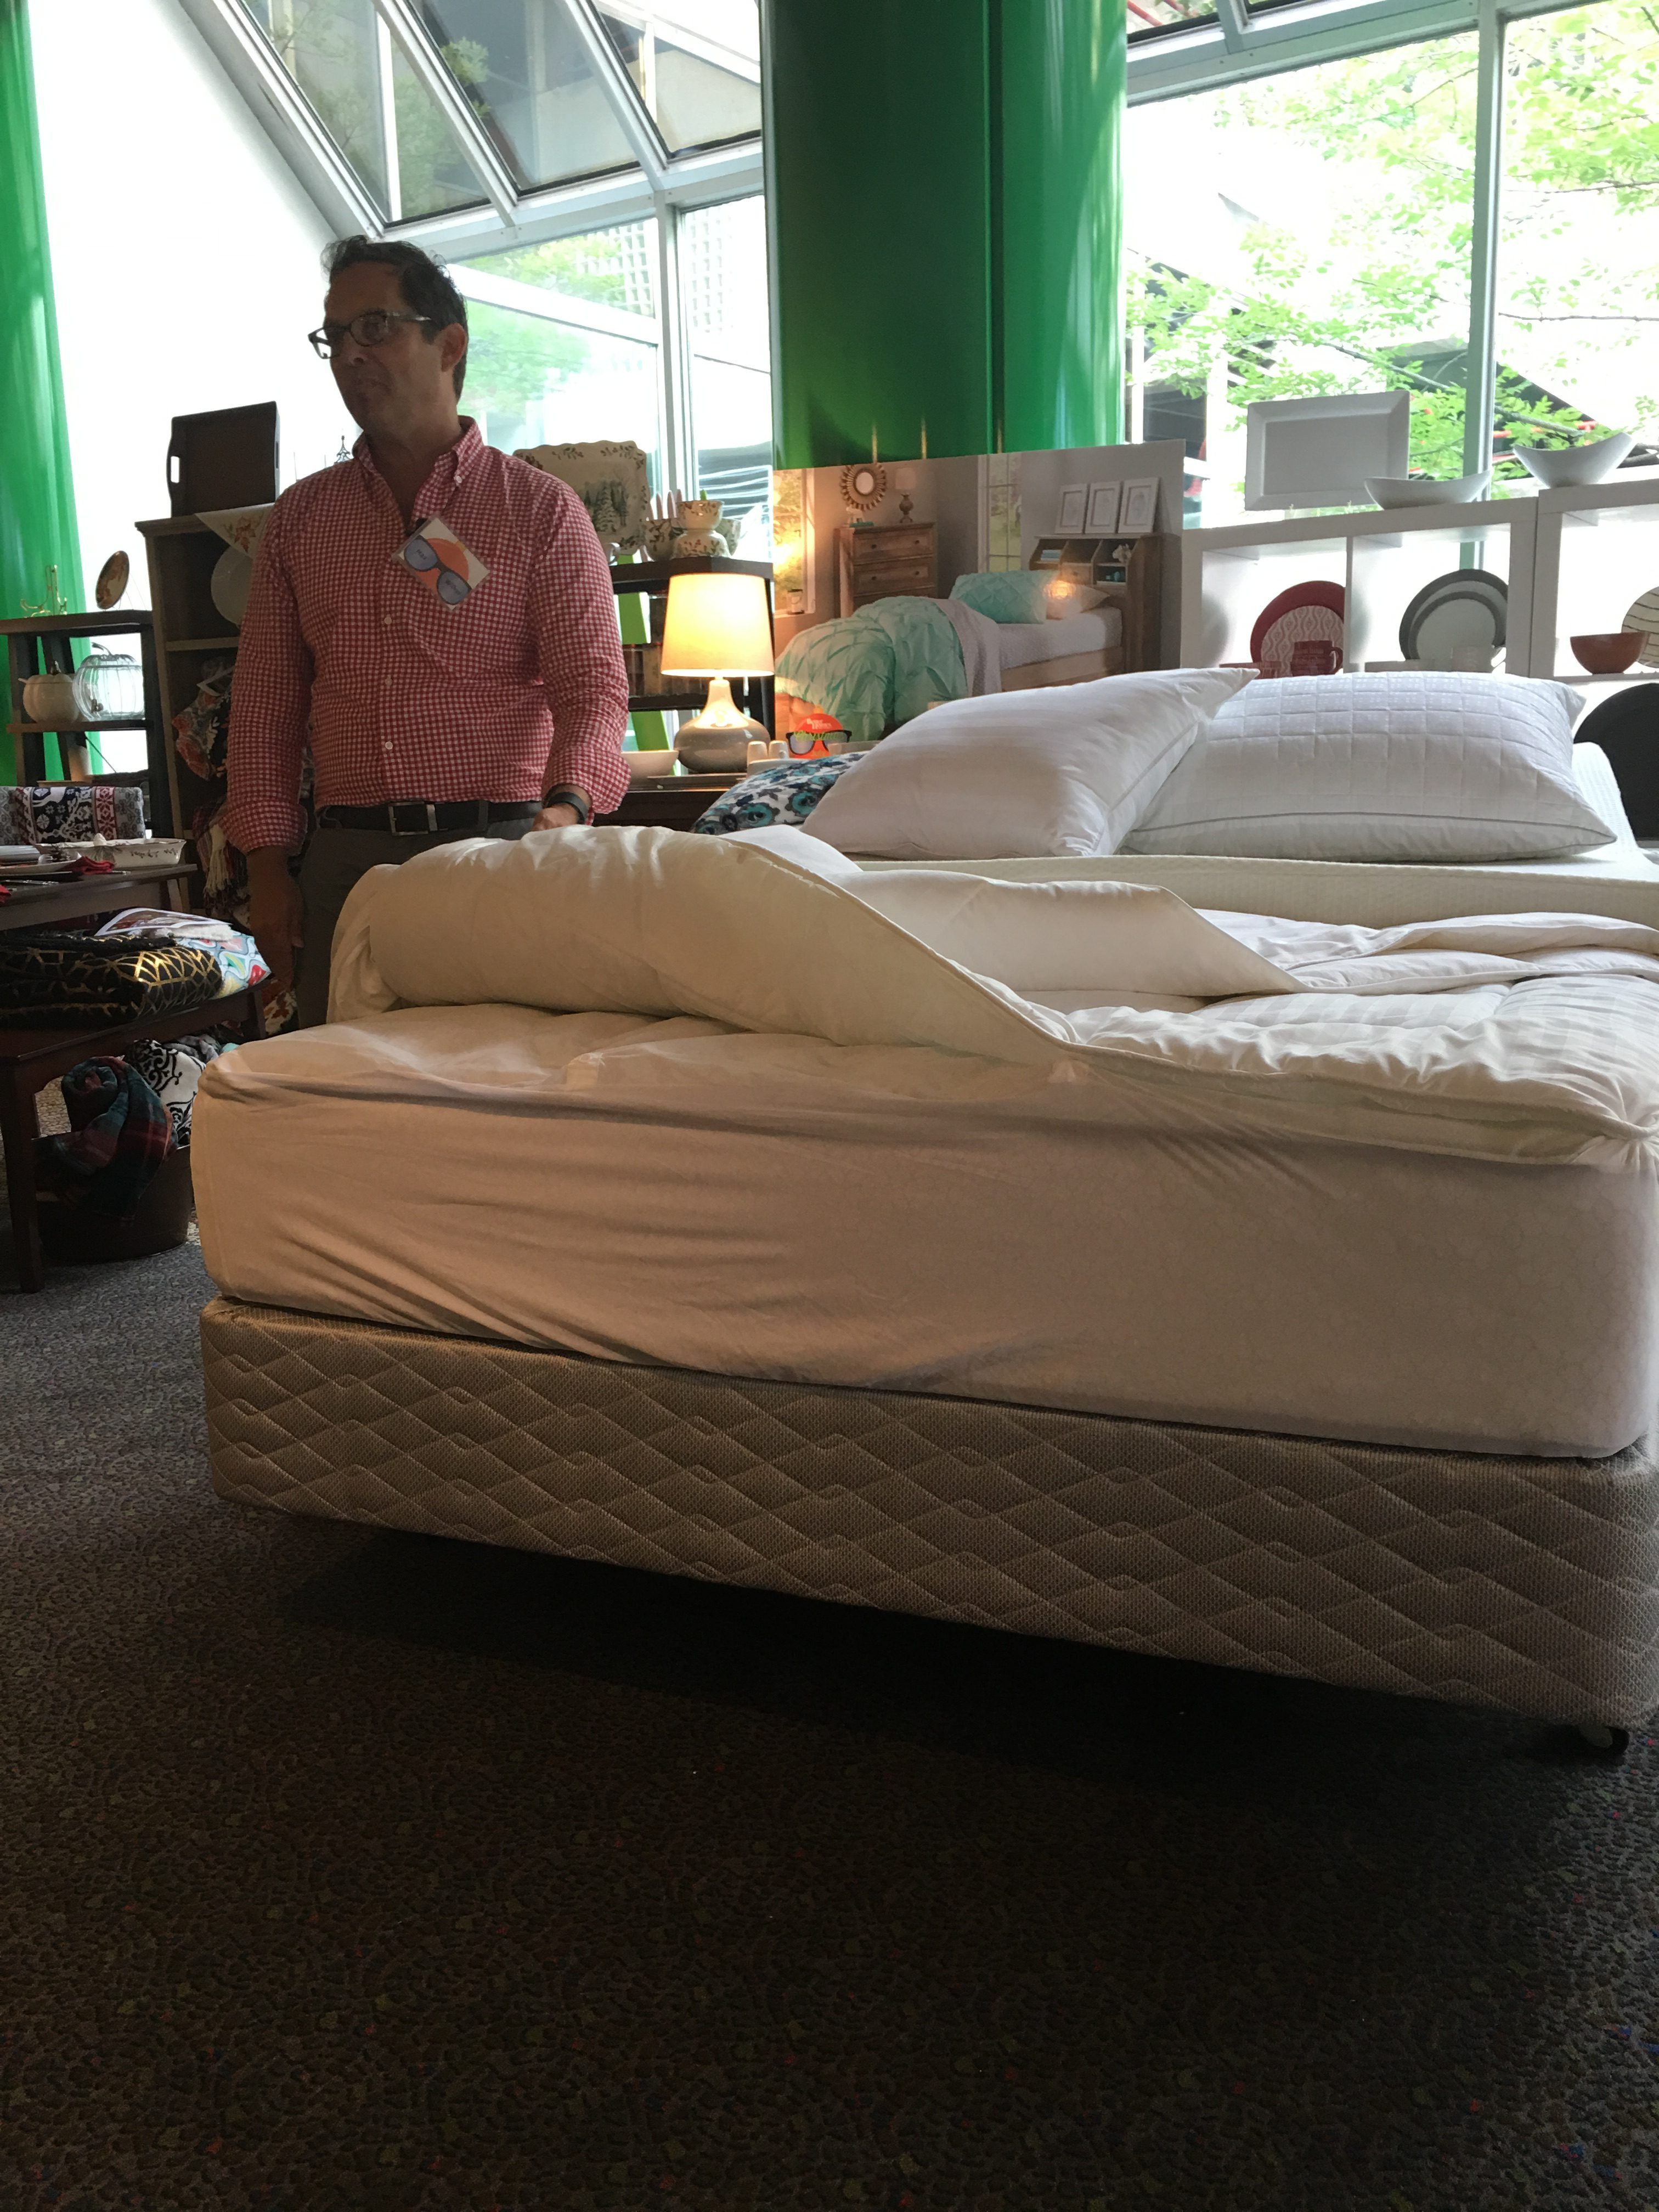 Affordable Memory foam mattresses